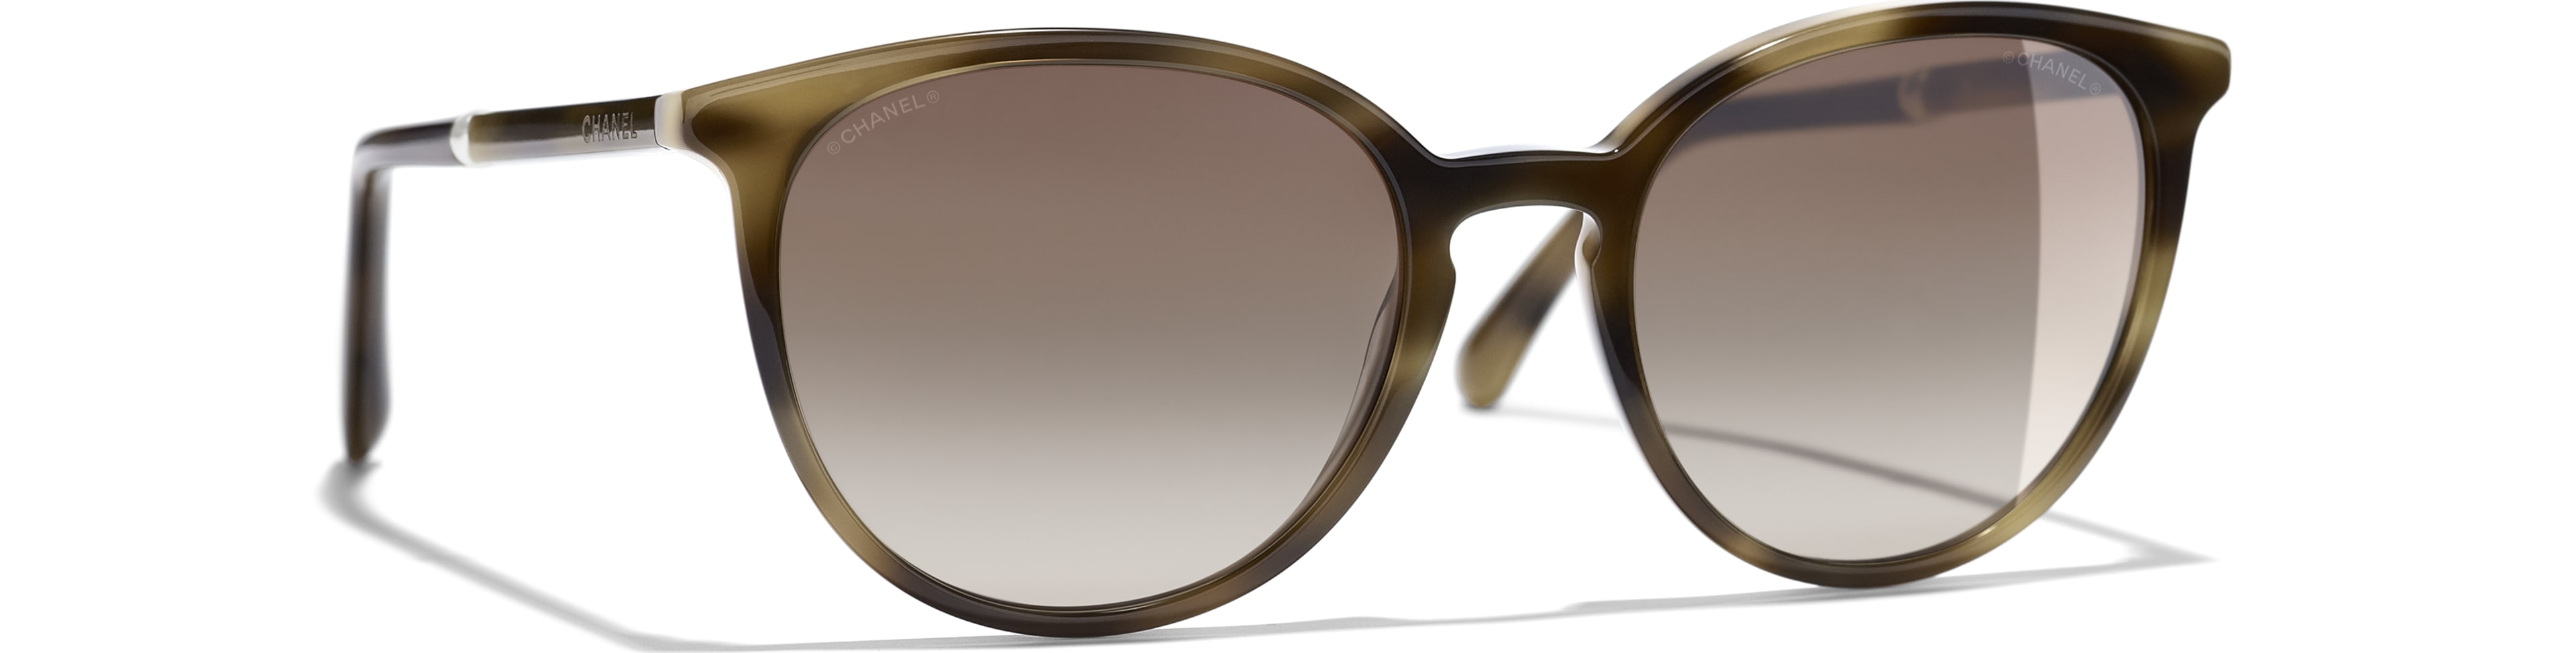 Acetate & Imitation Pearls tortoise frame. Brown gradient lenses